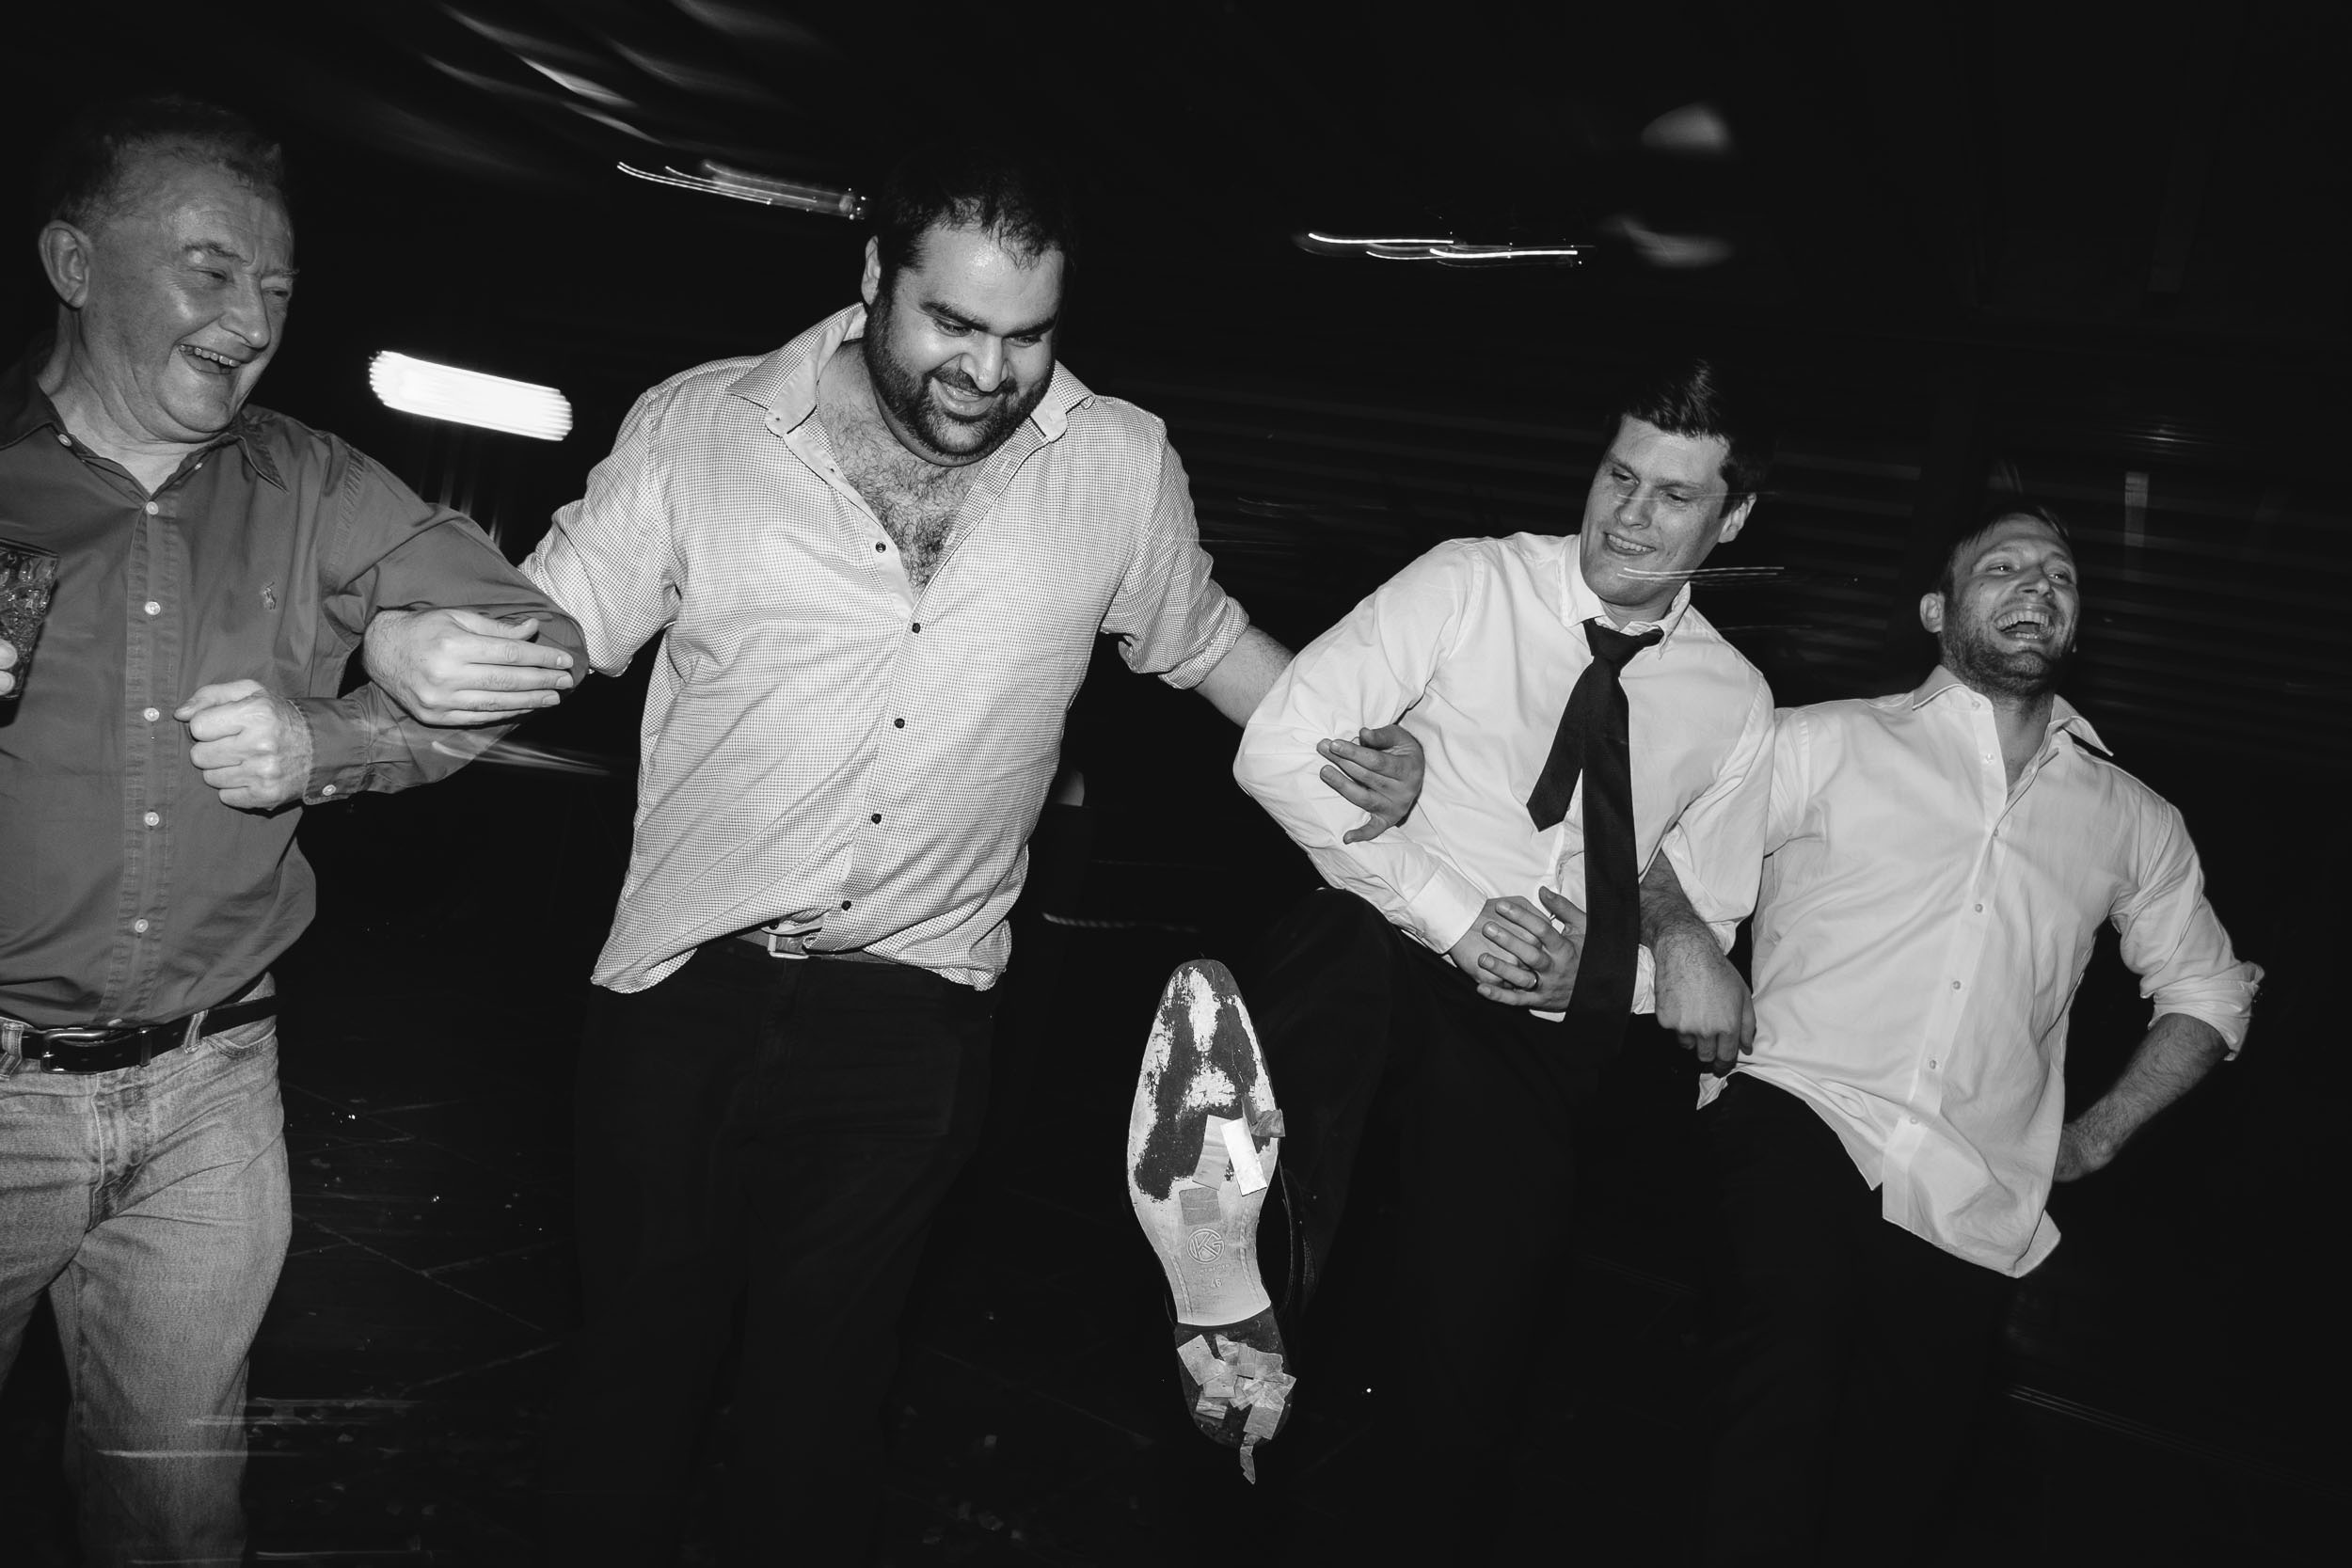 Black and white photo of groomsmen line dancing at wedding